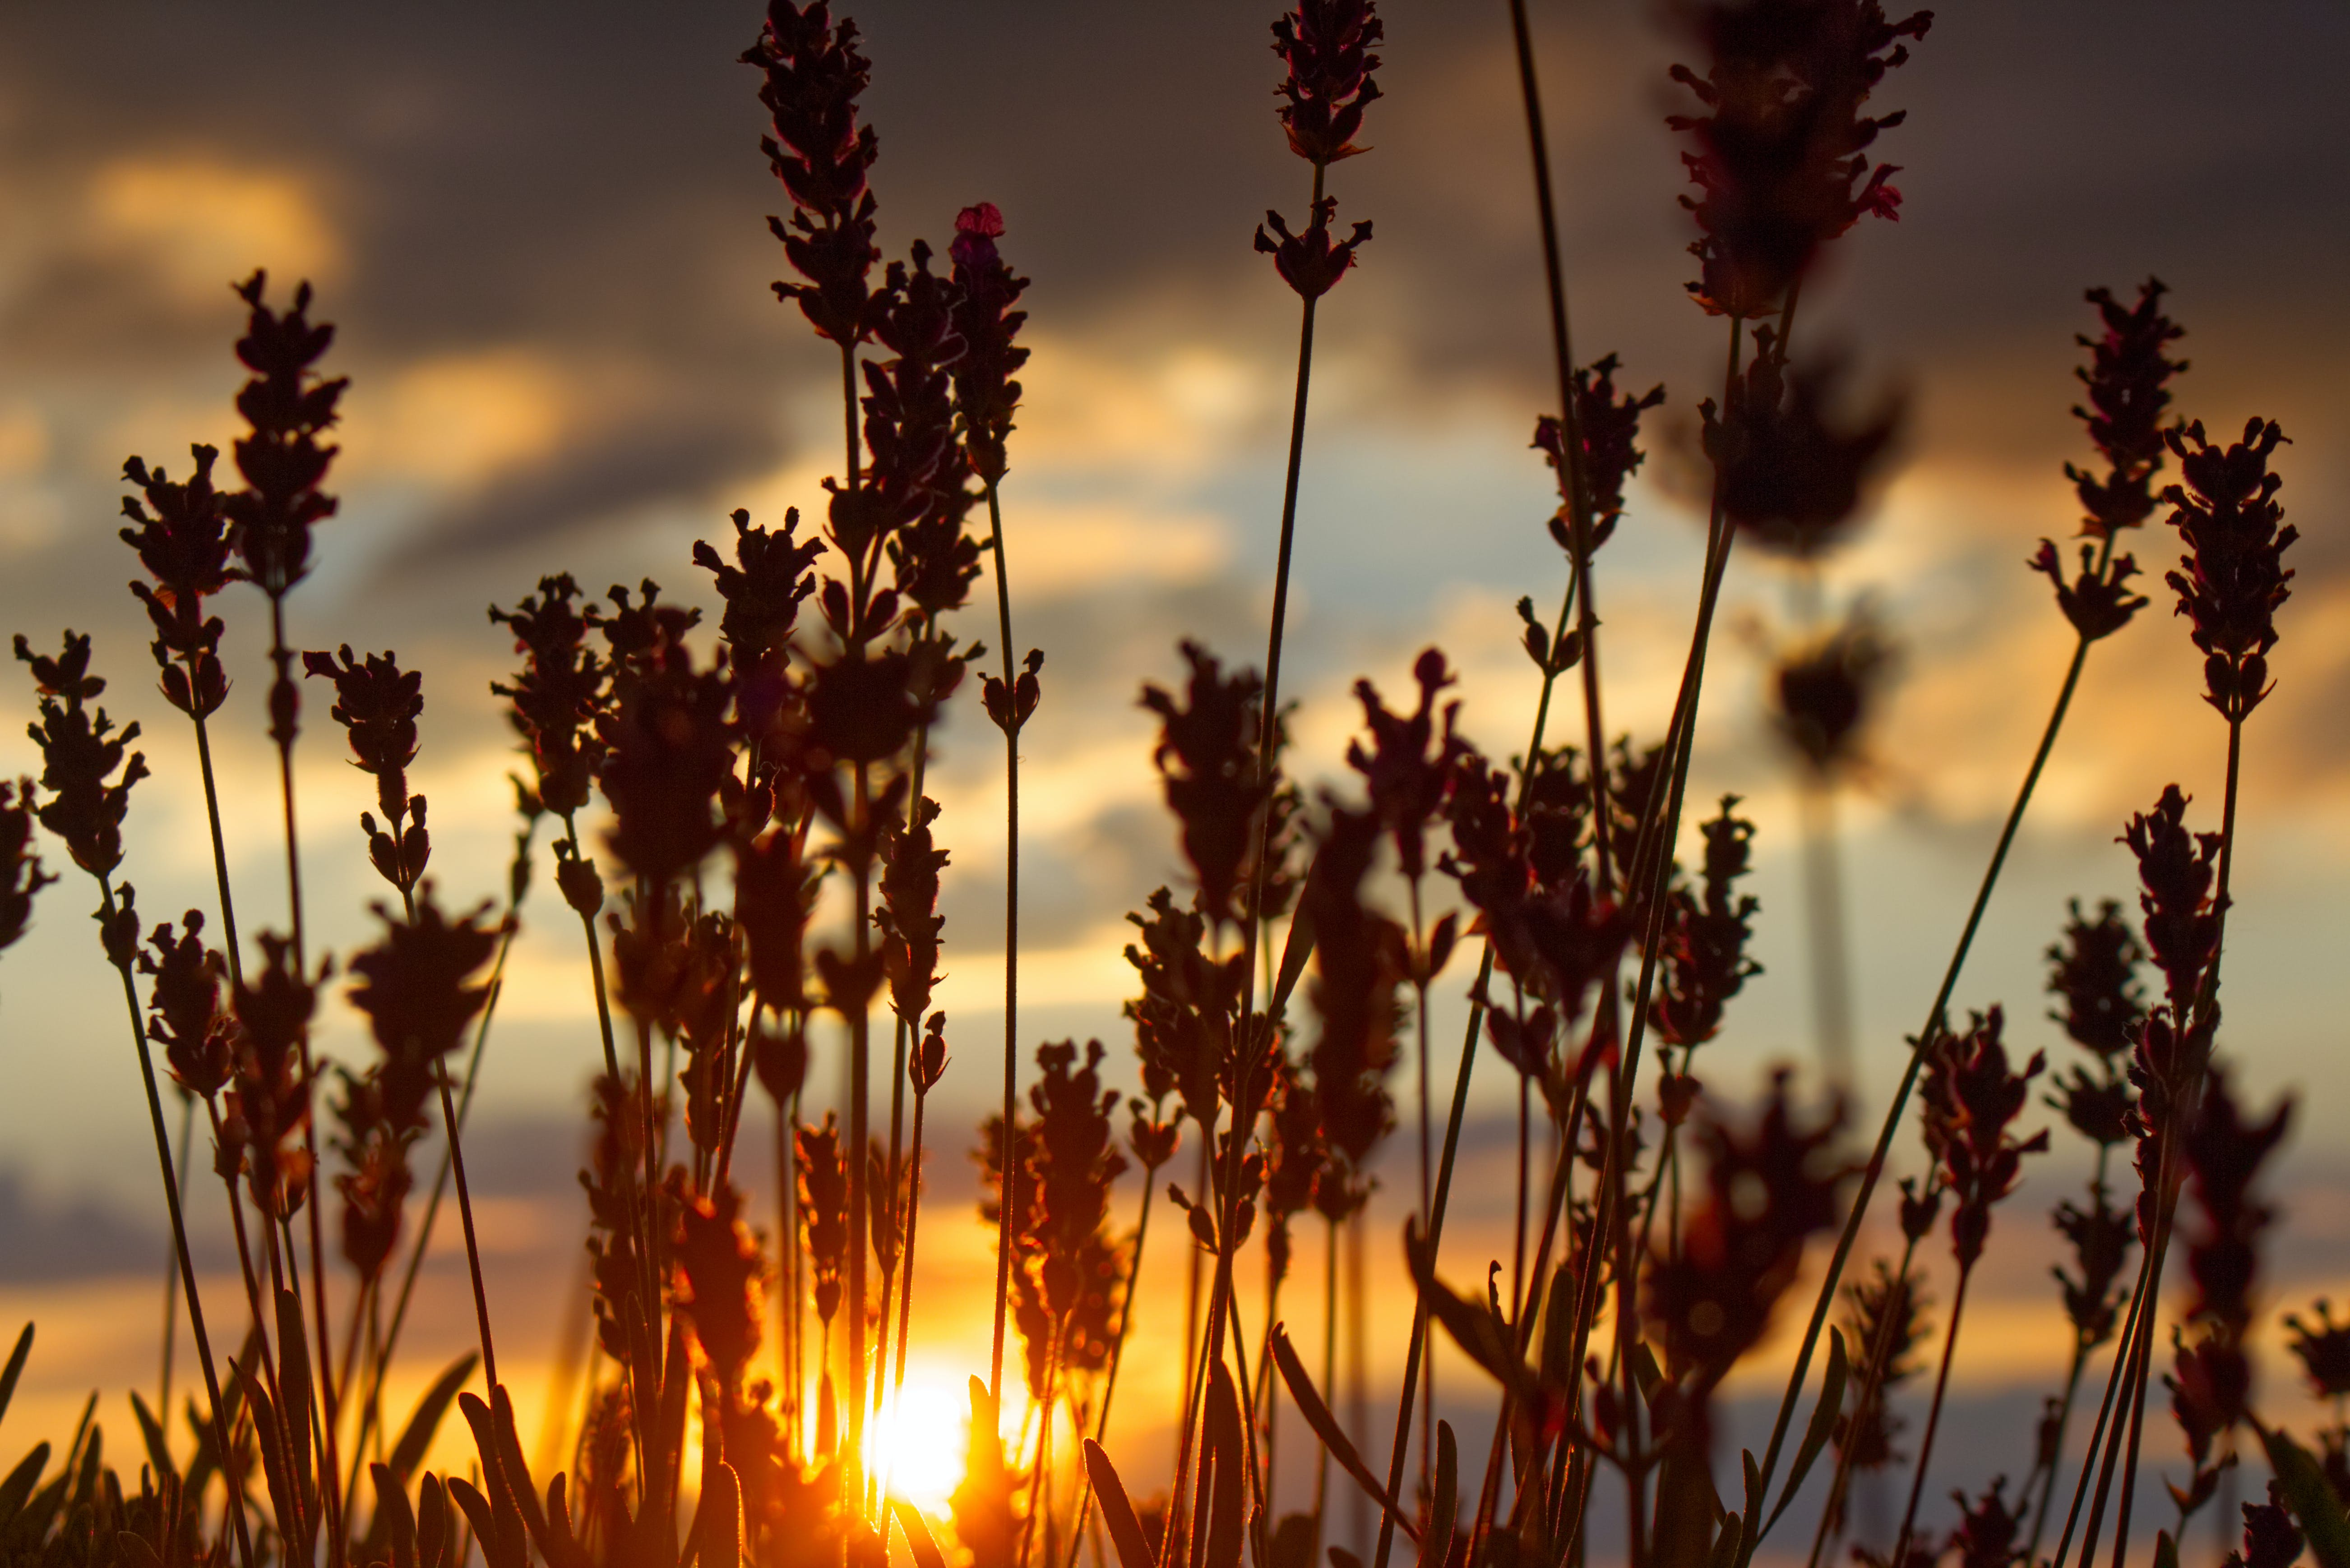 Silhouette Photo of Grass Under Gray Clouds during Golden Hour